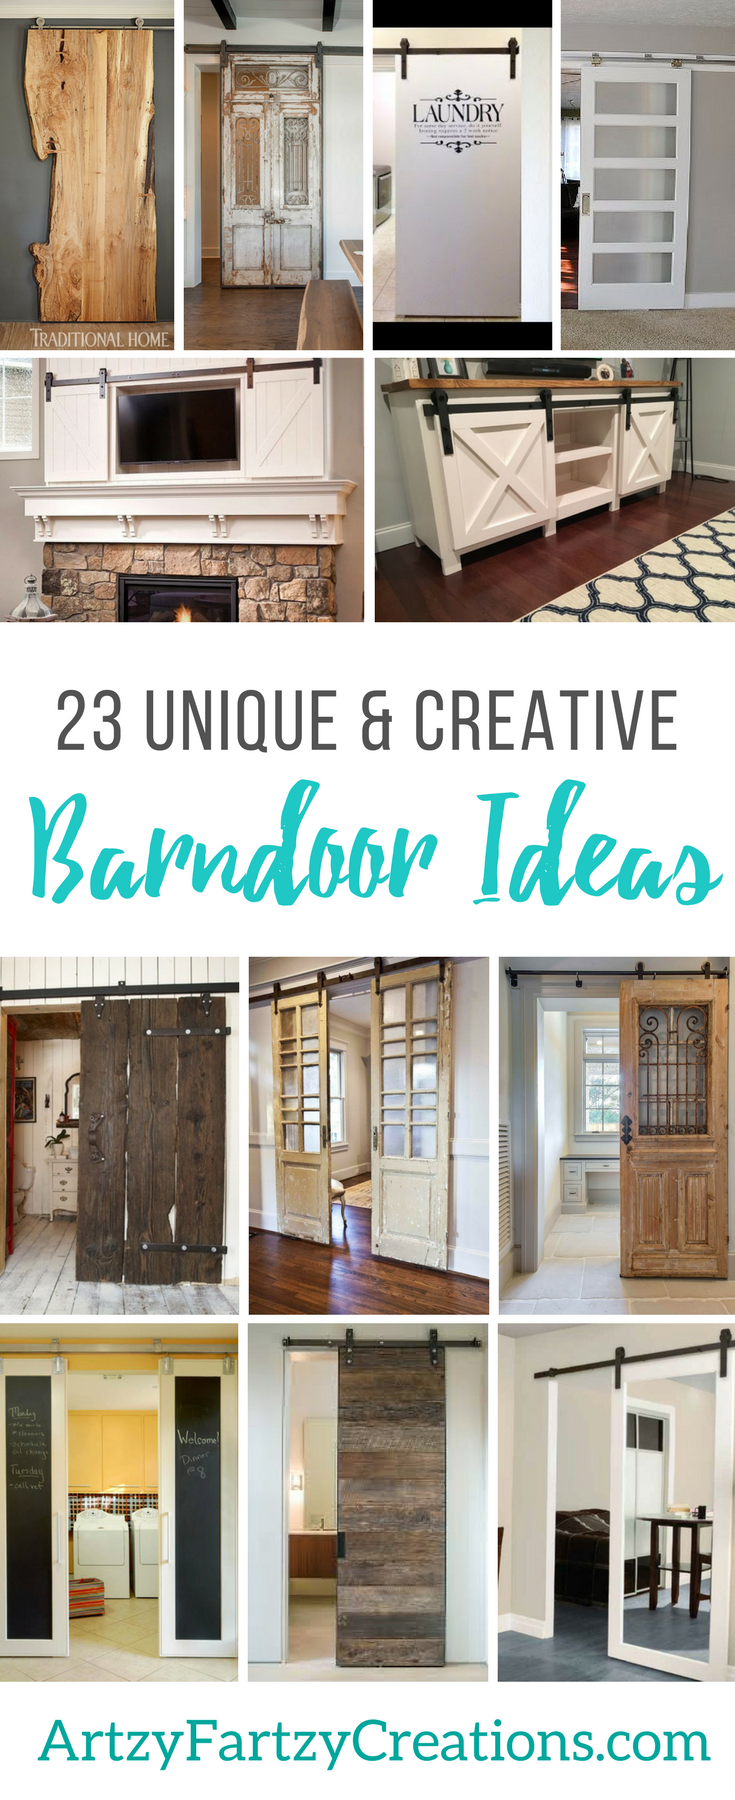 AF 23 Barndoor Ideas for your Home - Farmhouse Doors - Bypass Barndoor Furniture - Pantry - Kitchen - Laundry Room - Door Solutions - Contemporary Barndoors - Traditional Barndoors